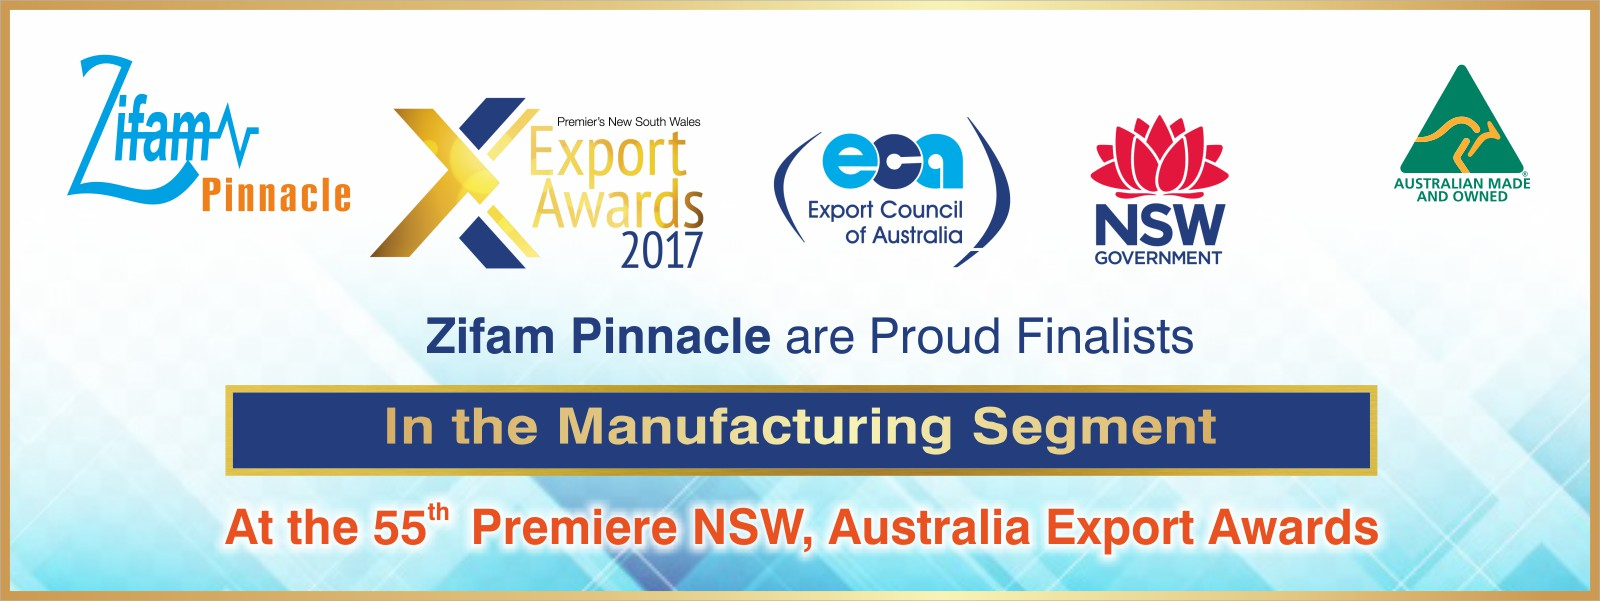 NSW-Export-Awards